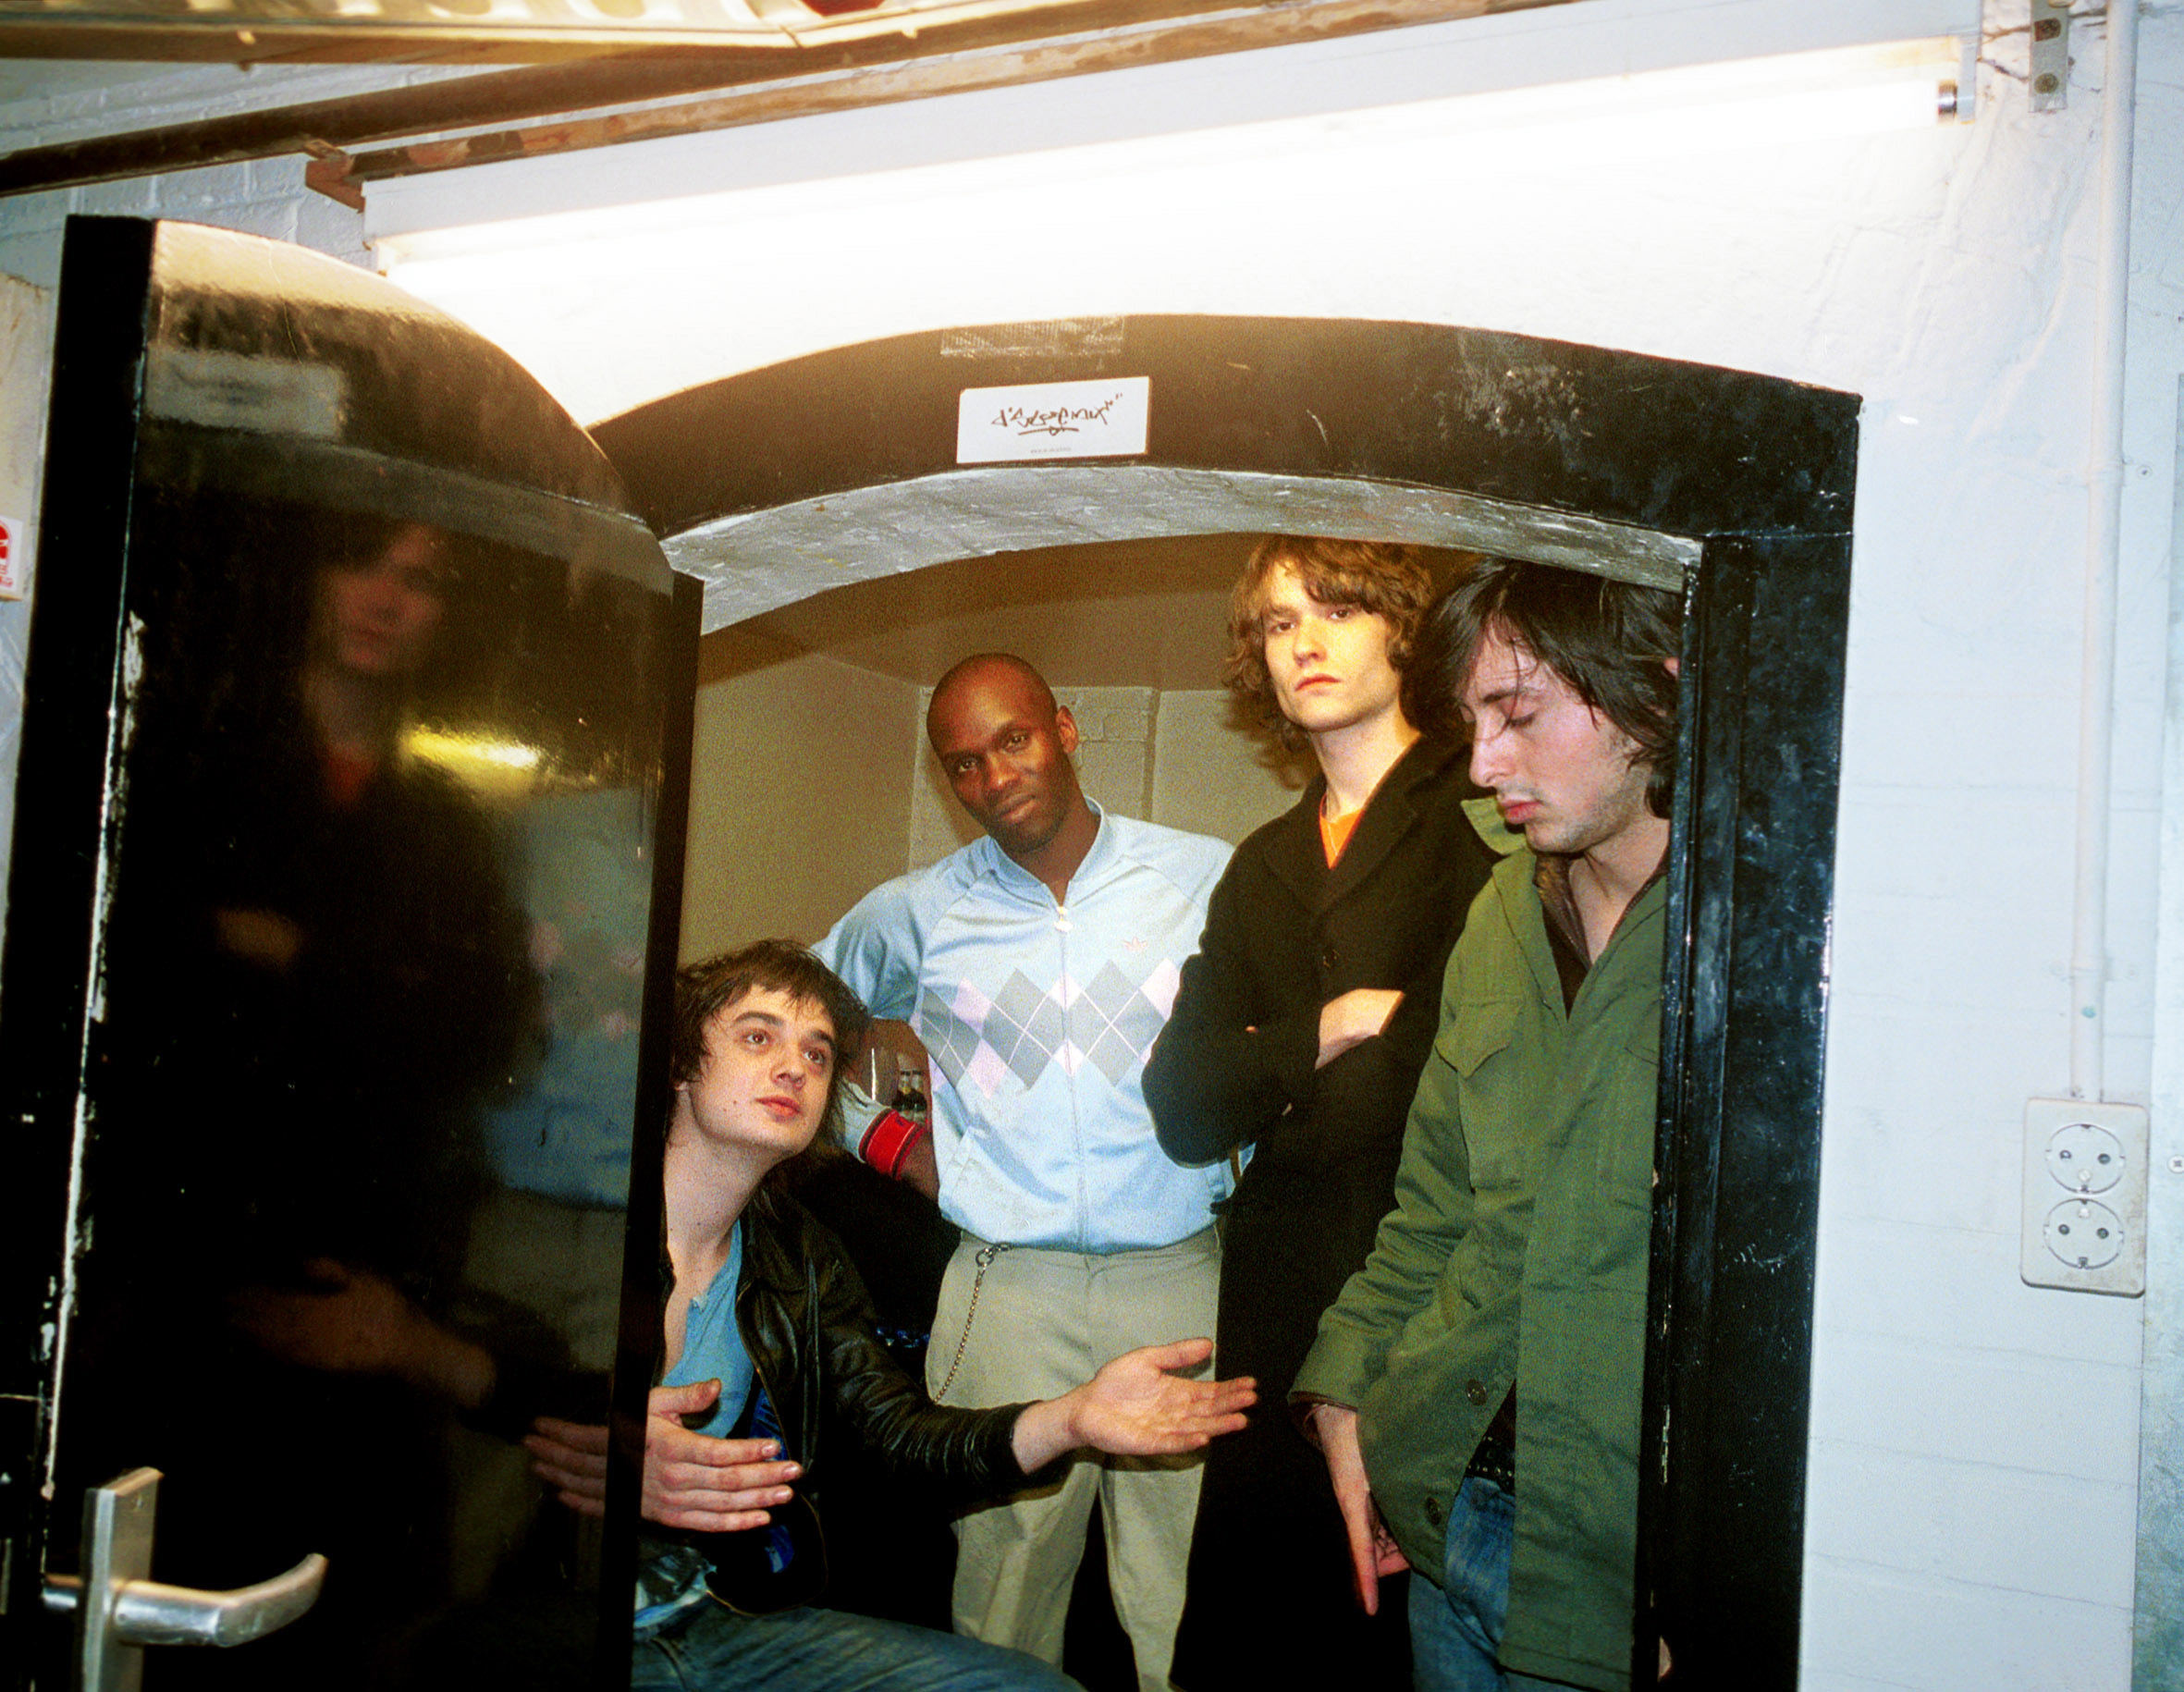 (NETHERLANDS OUT) NETHERLANDS - AUGUST 16:  Photo of Pete DOHERTY and LIBERTINES and Carl BARAT and John HASSALL and Gary POW